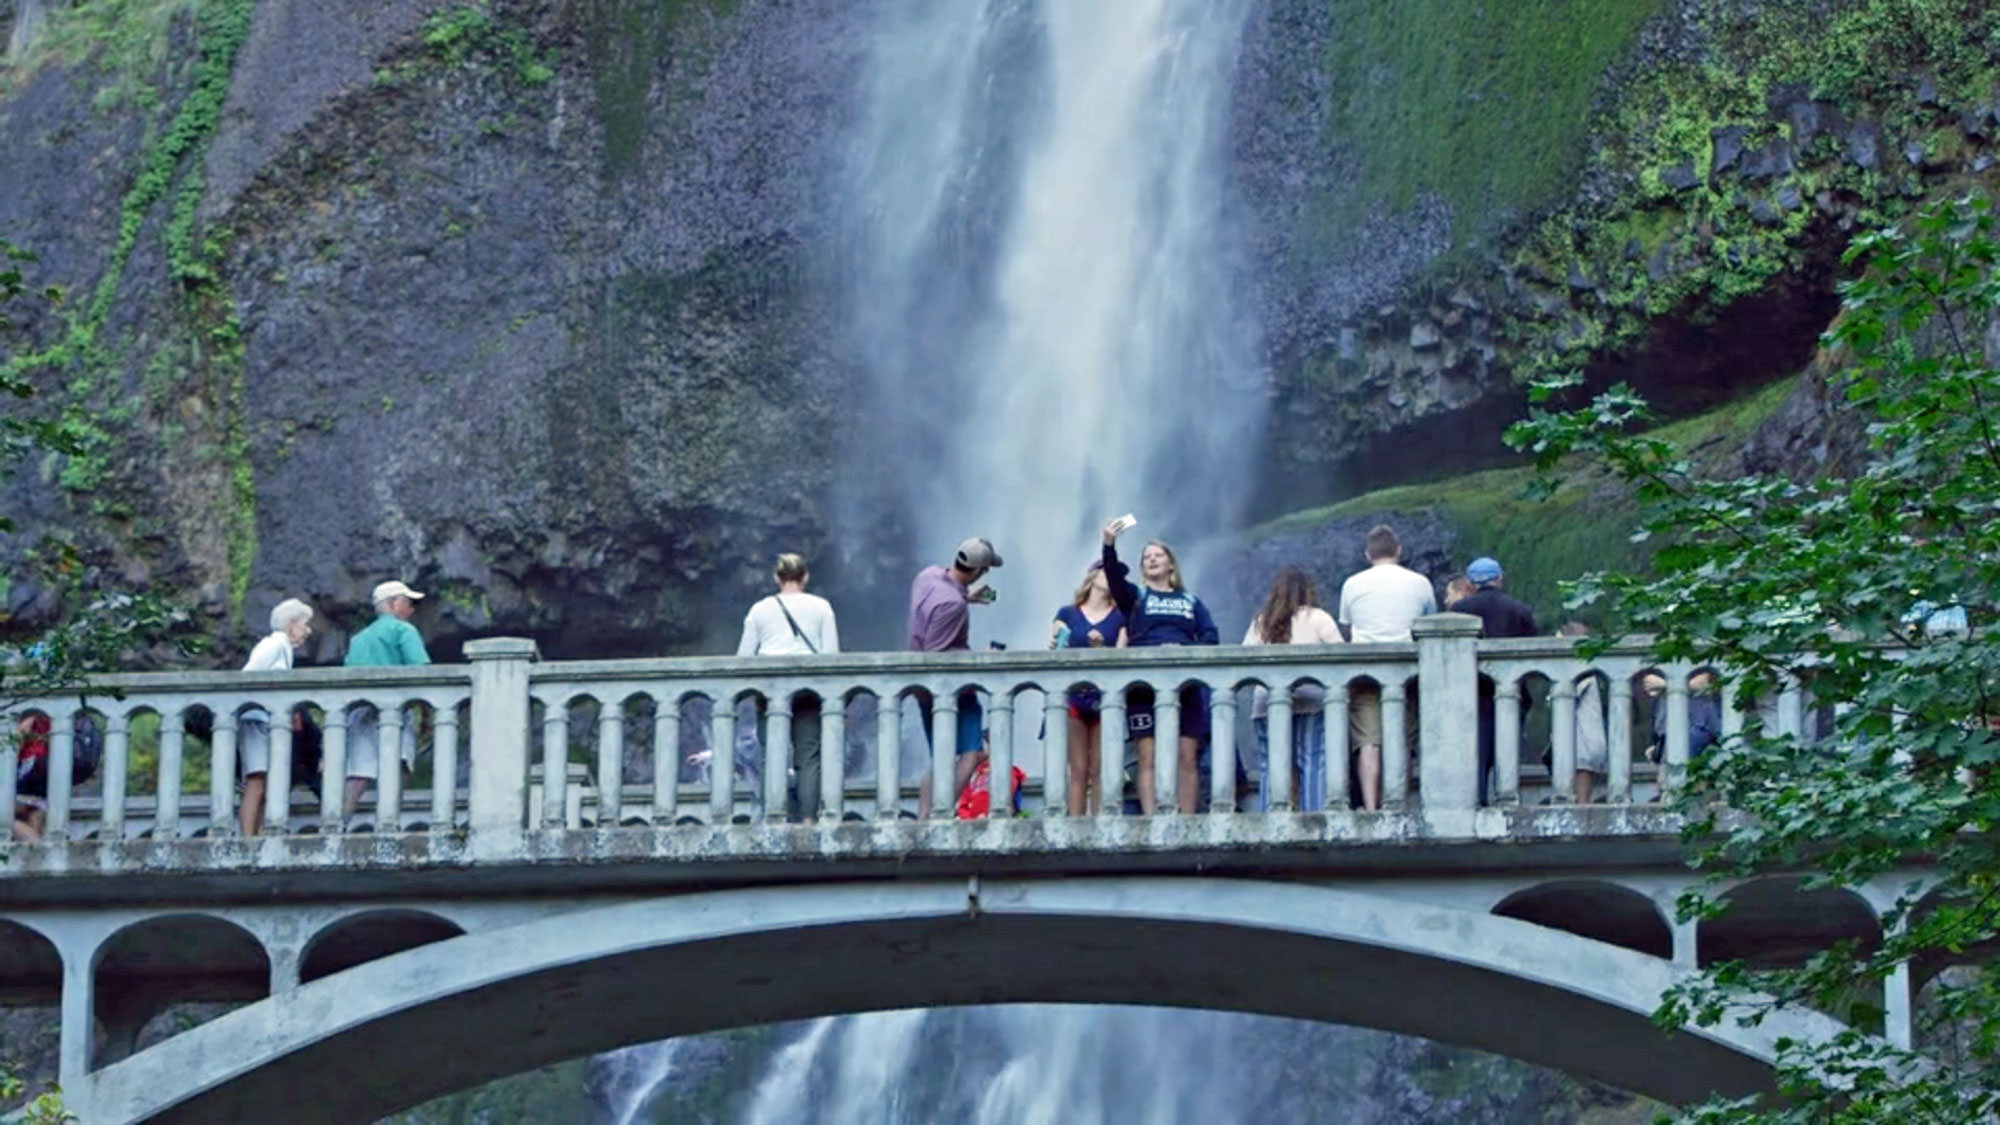 Visitors poses for selfies on Benson Bridge, with the Multnomah Falls cascade behind them.